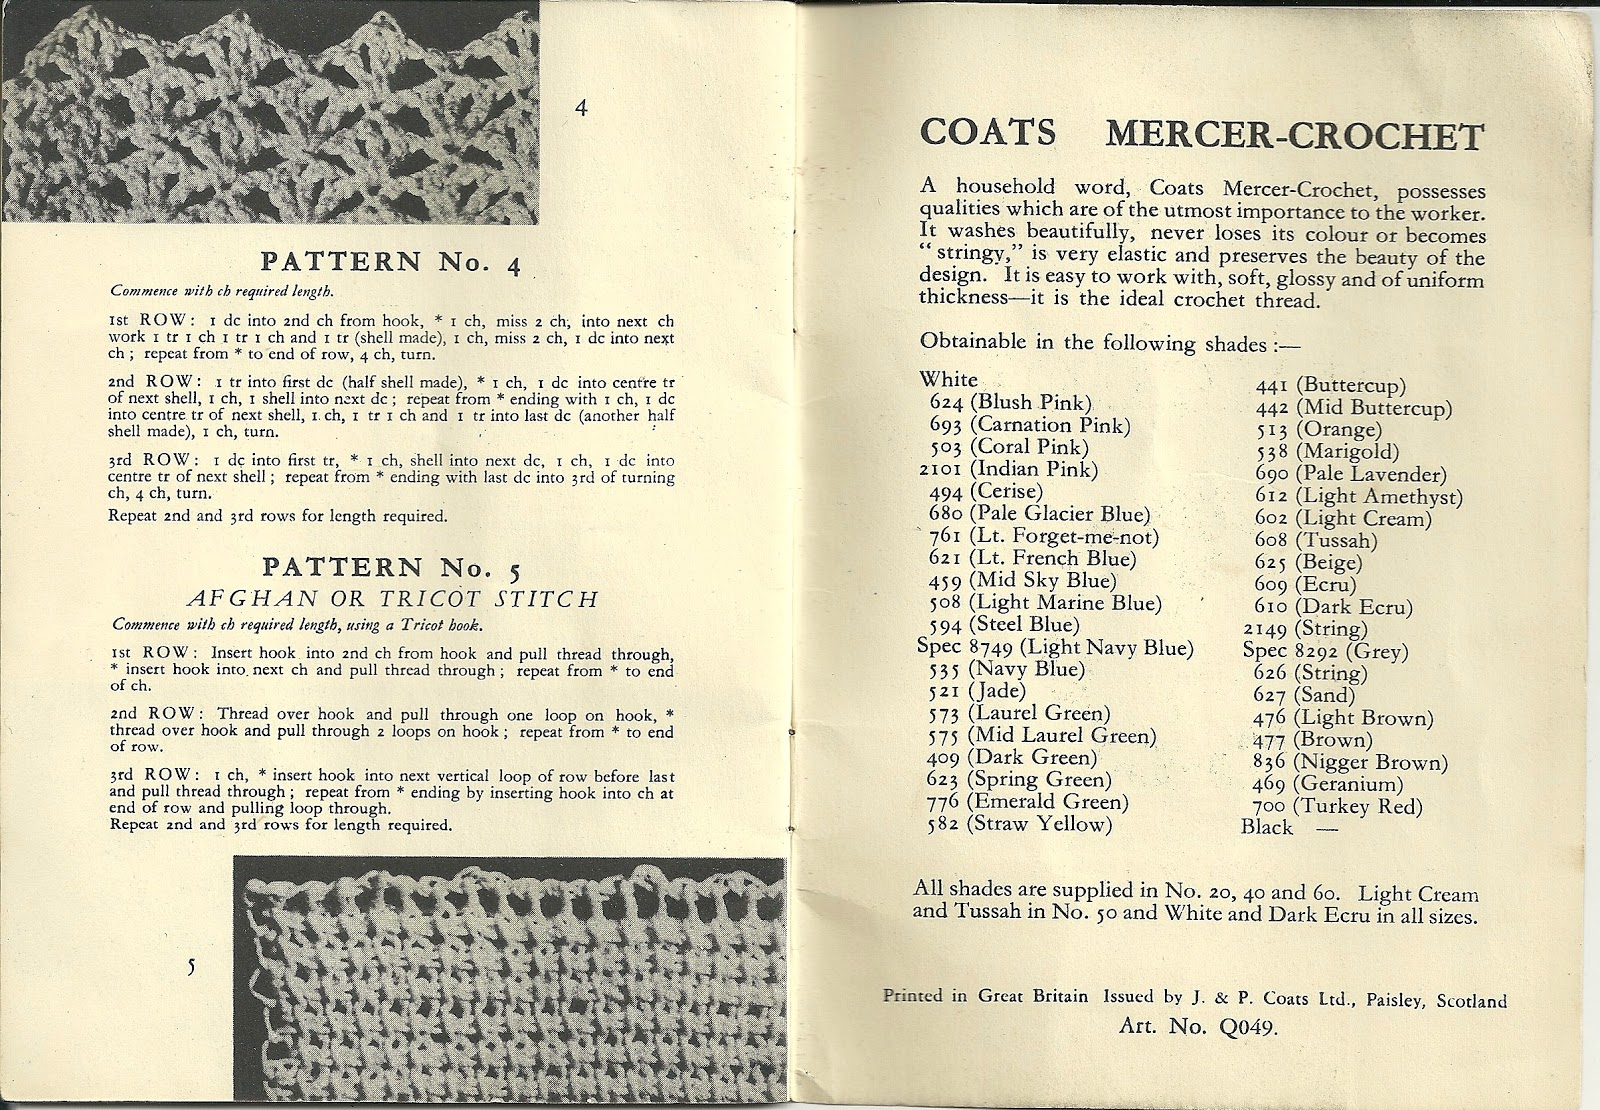 Crochet Pattern Notation : Old Coats Crochet Stitches Booklet Abigail Dace London